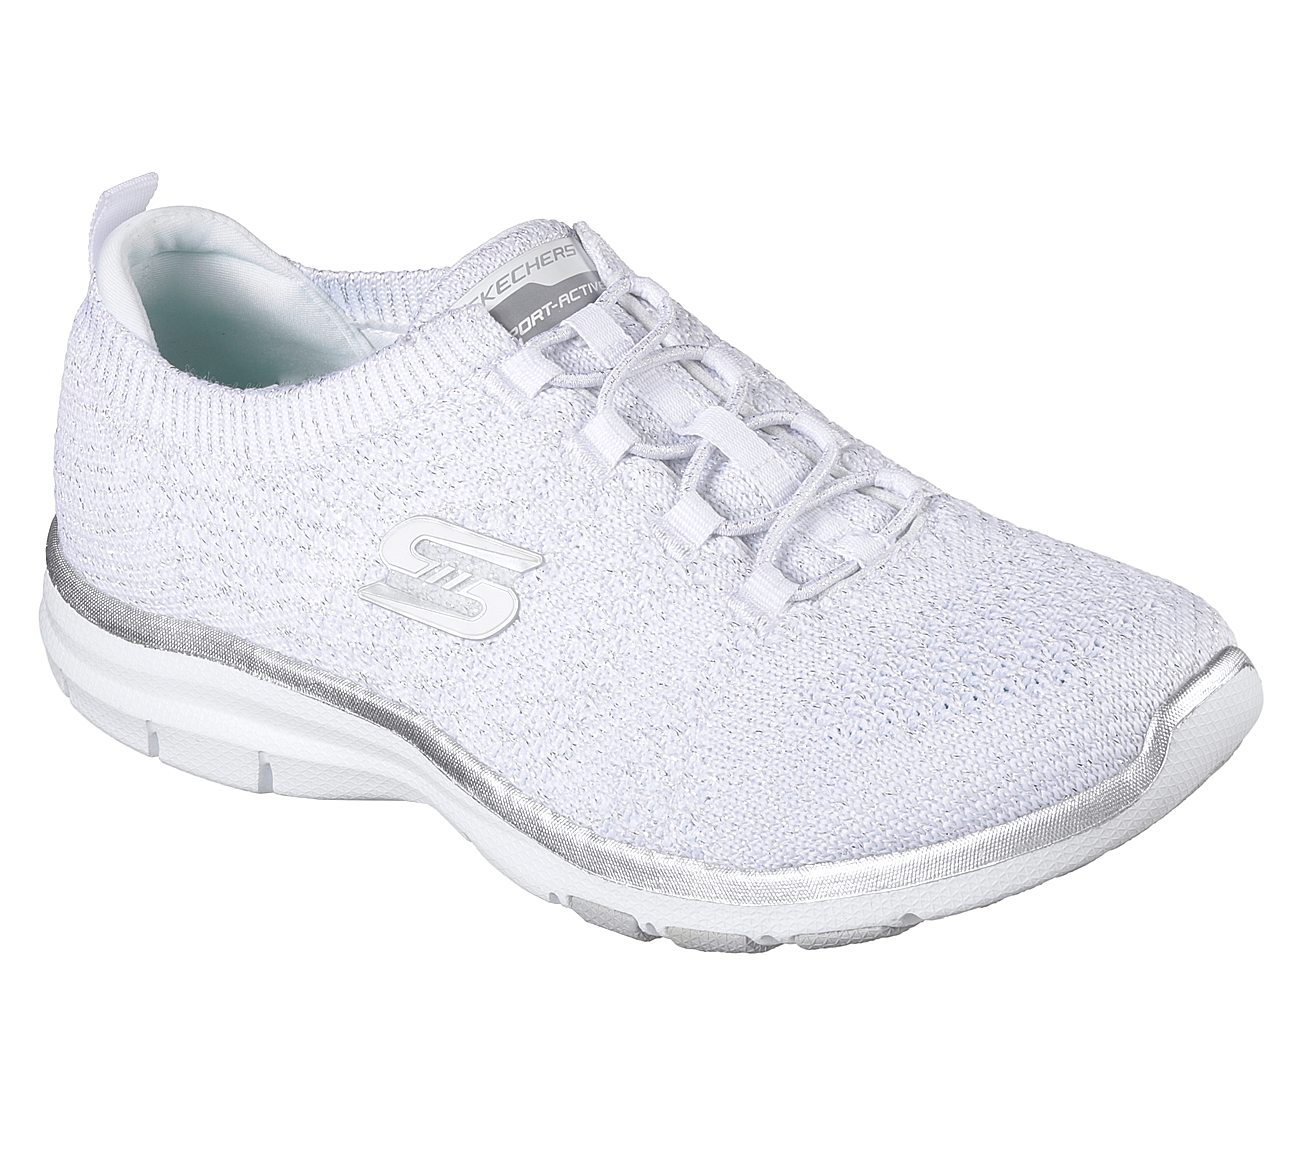 00 SKECHERS 46 Buy Active Iridescence Galaxies only Shoes 7R0dqw